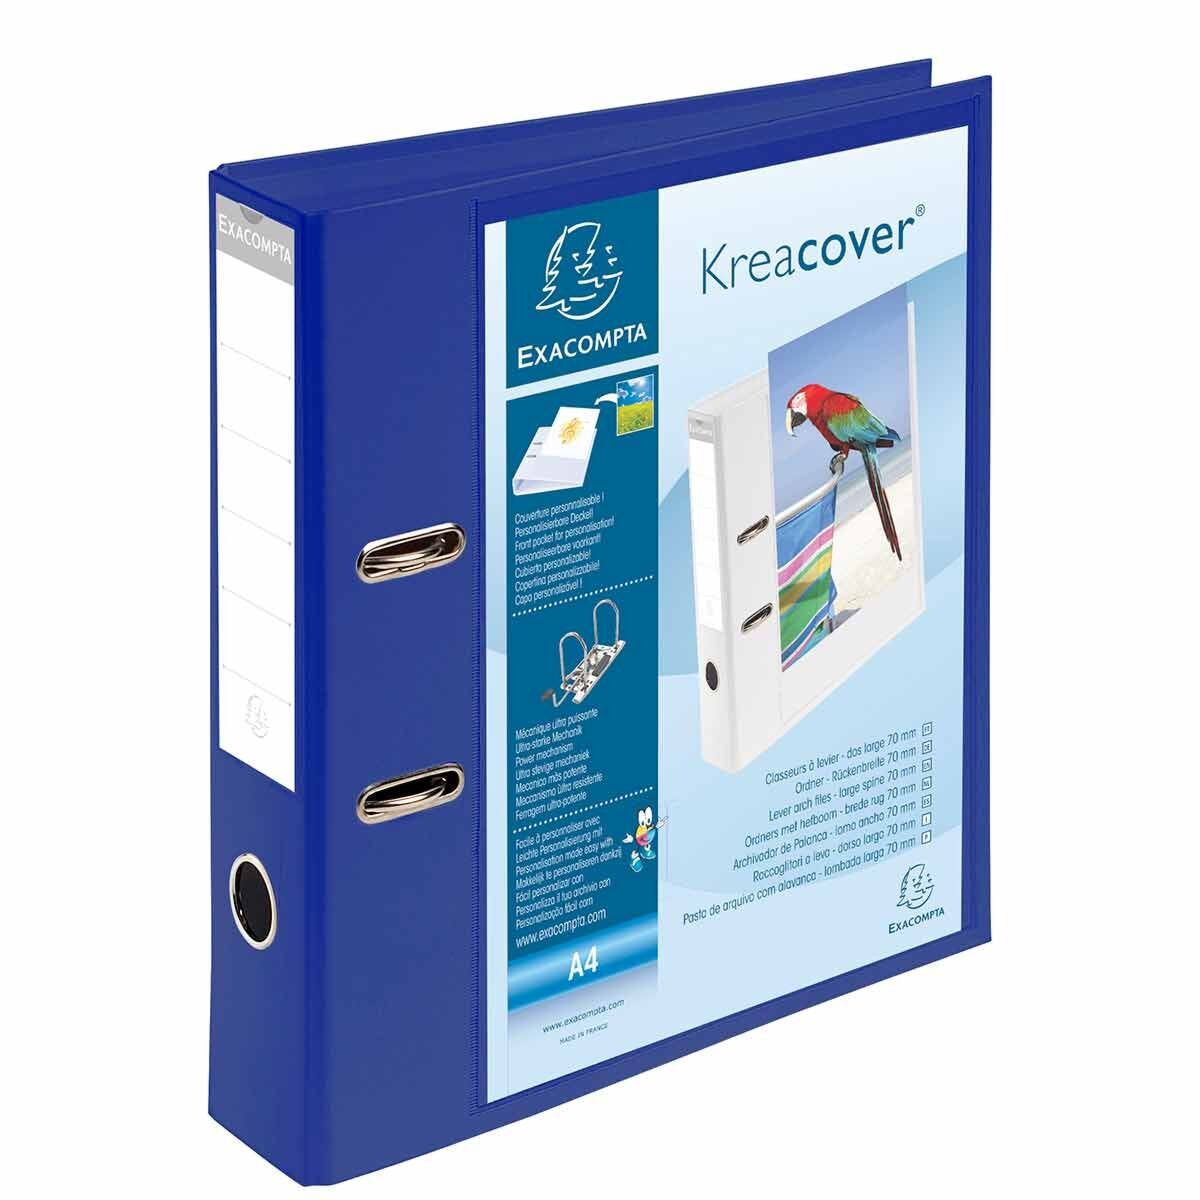 Exacompta Kreacover PremTouch Lever Arch File A4 70mm Pack of 10 Blue